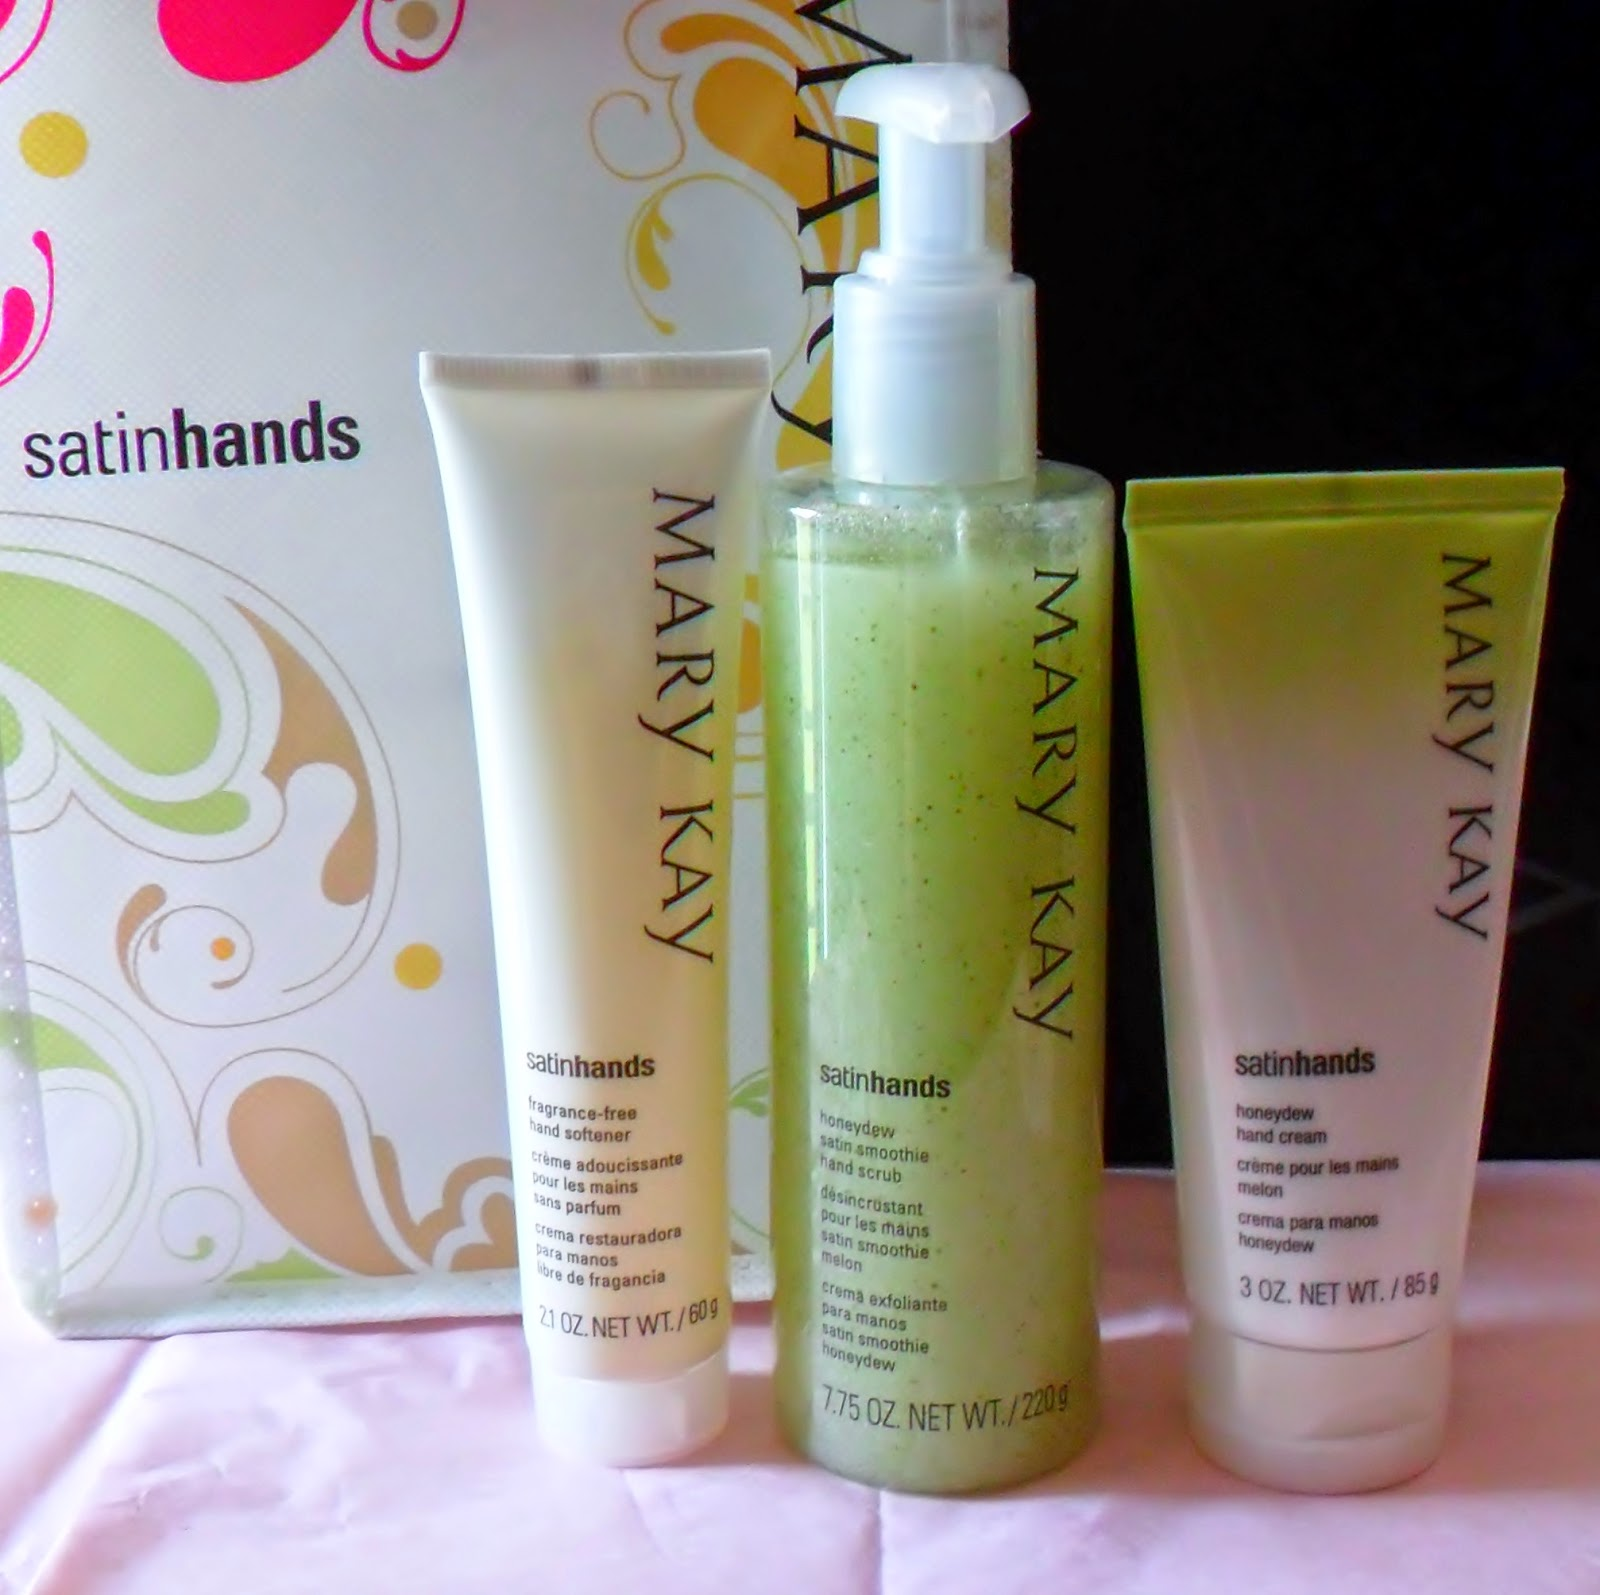 My Beauty Full Adventure Review Mary Kay Limited Edition Honeydew